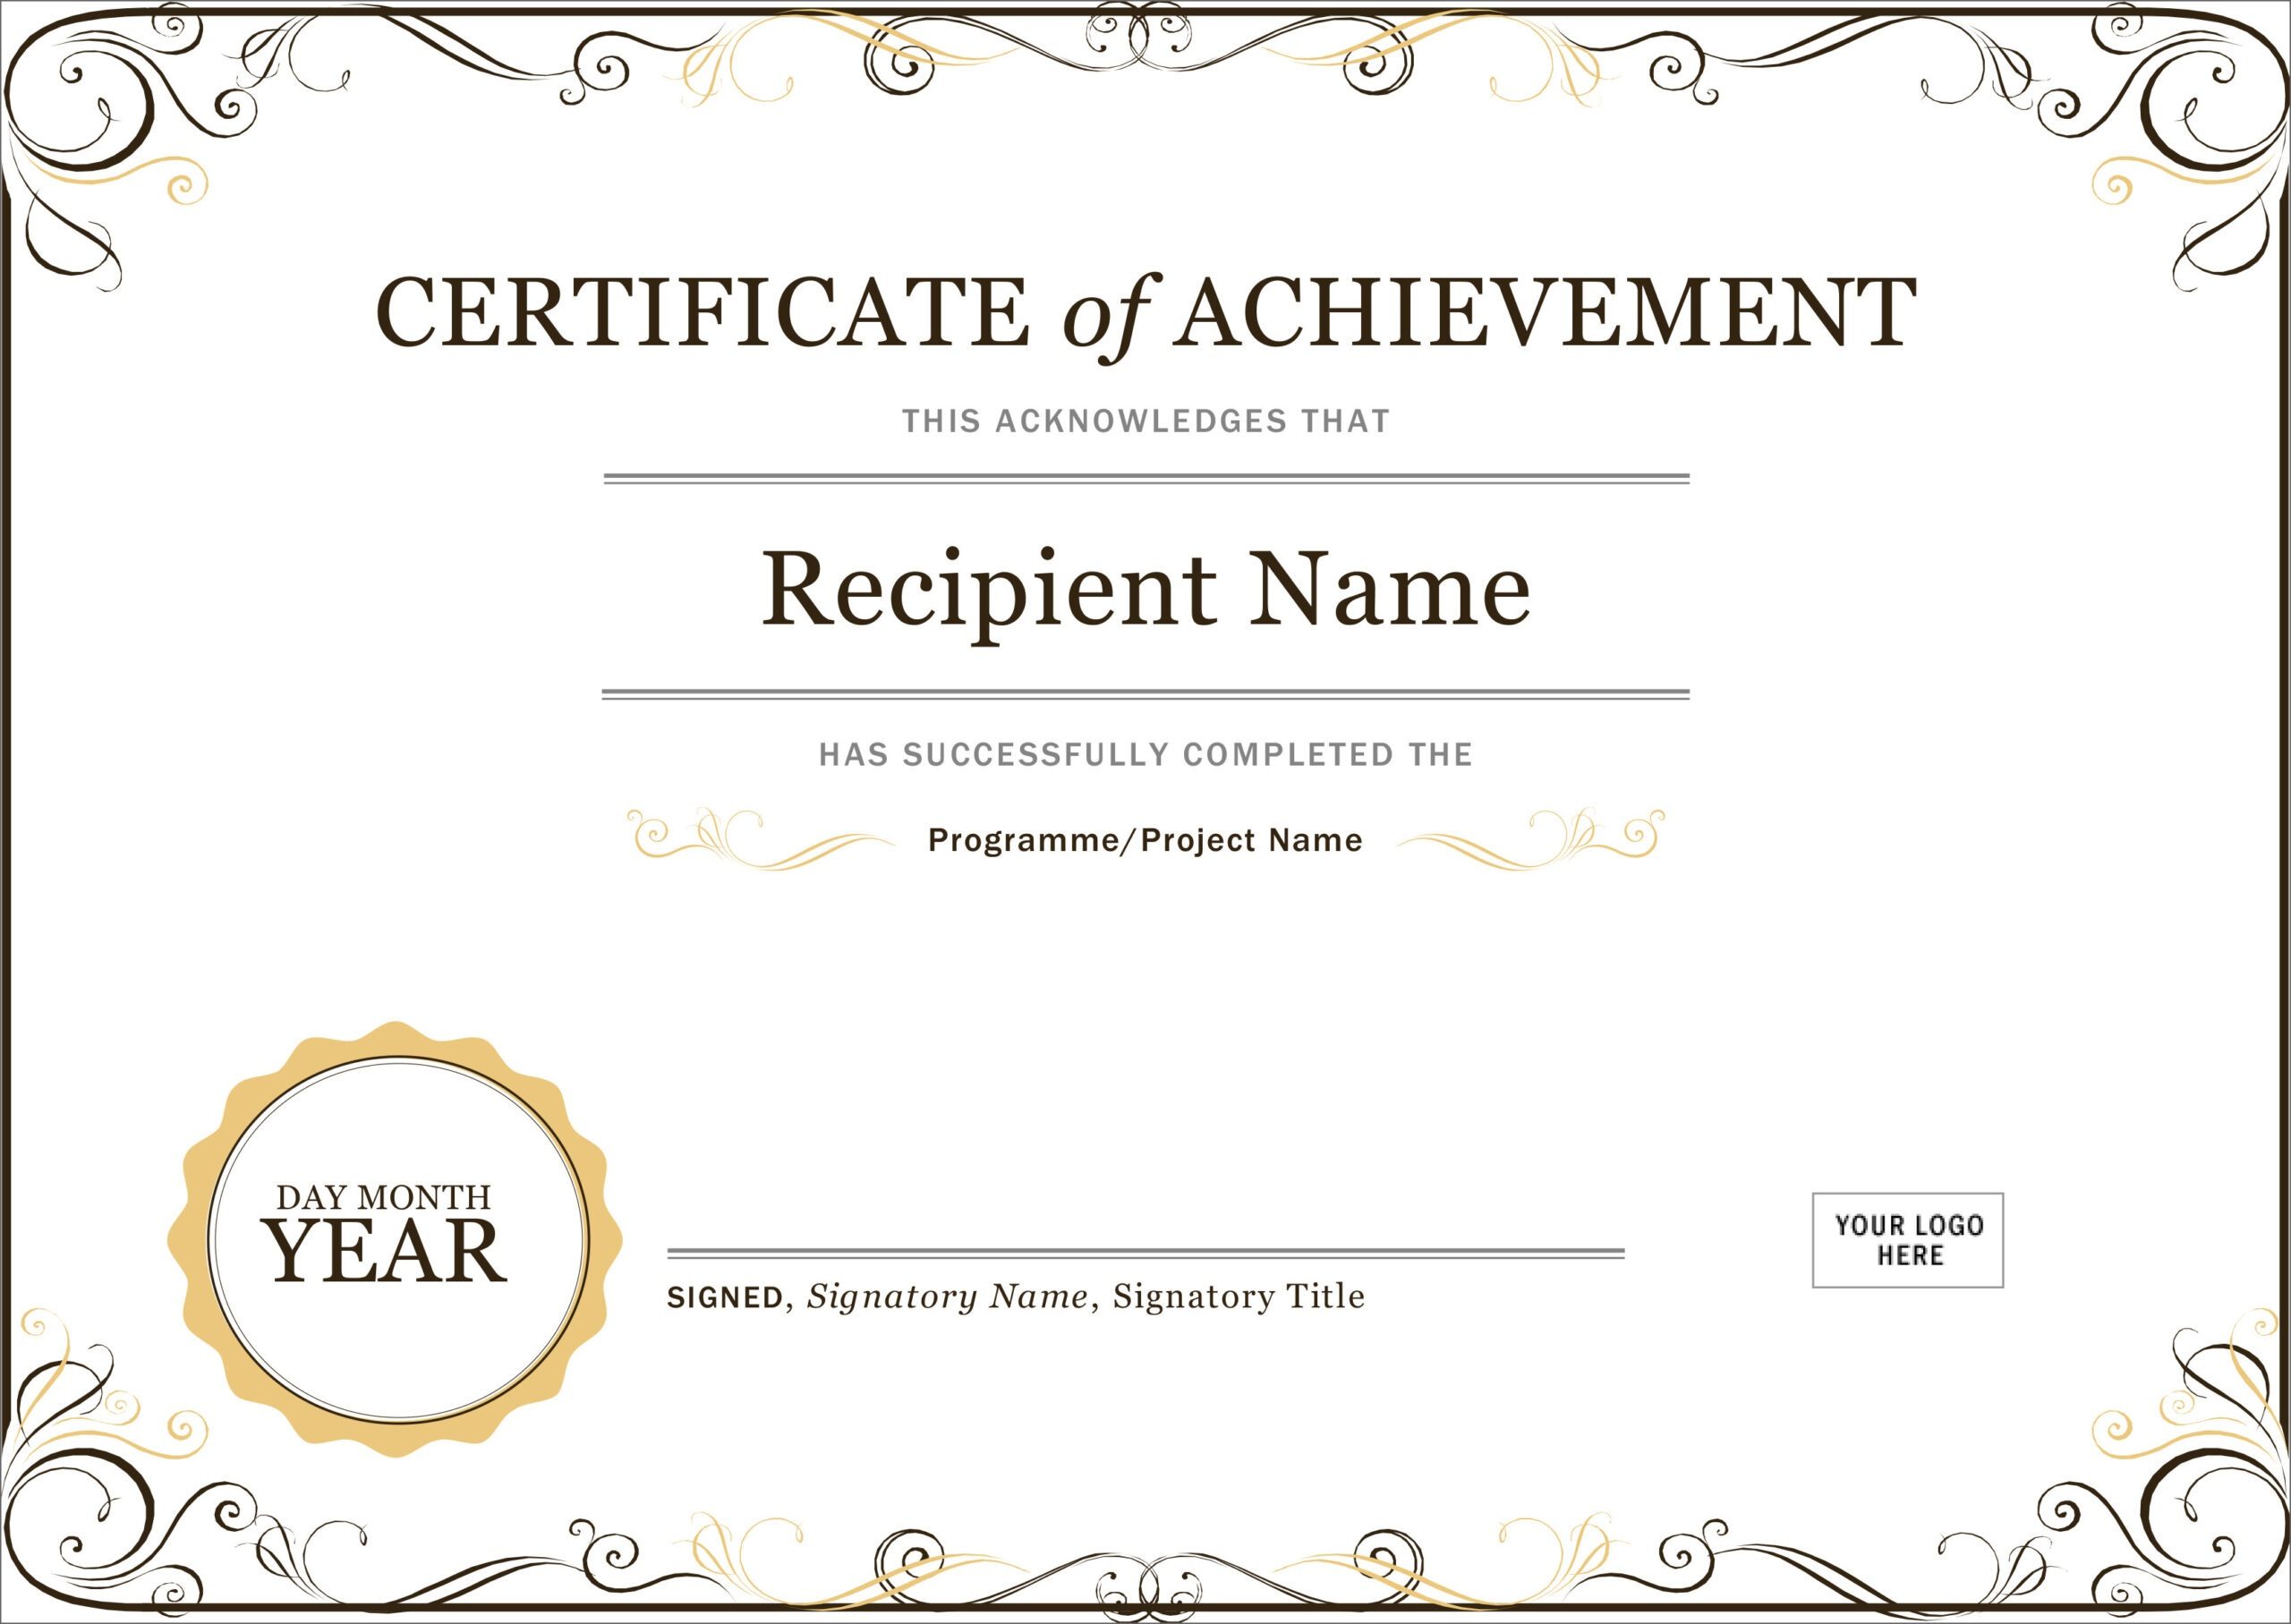 005 Magnificent Microsoft Word Certificate Template High Def  2003 Award M Appreciation Of AuthenticityFull